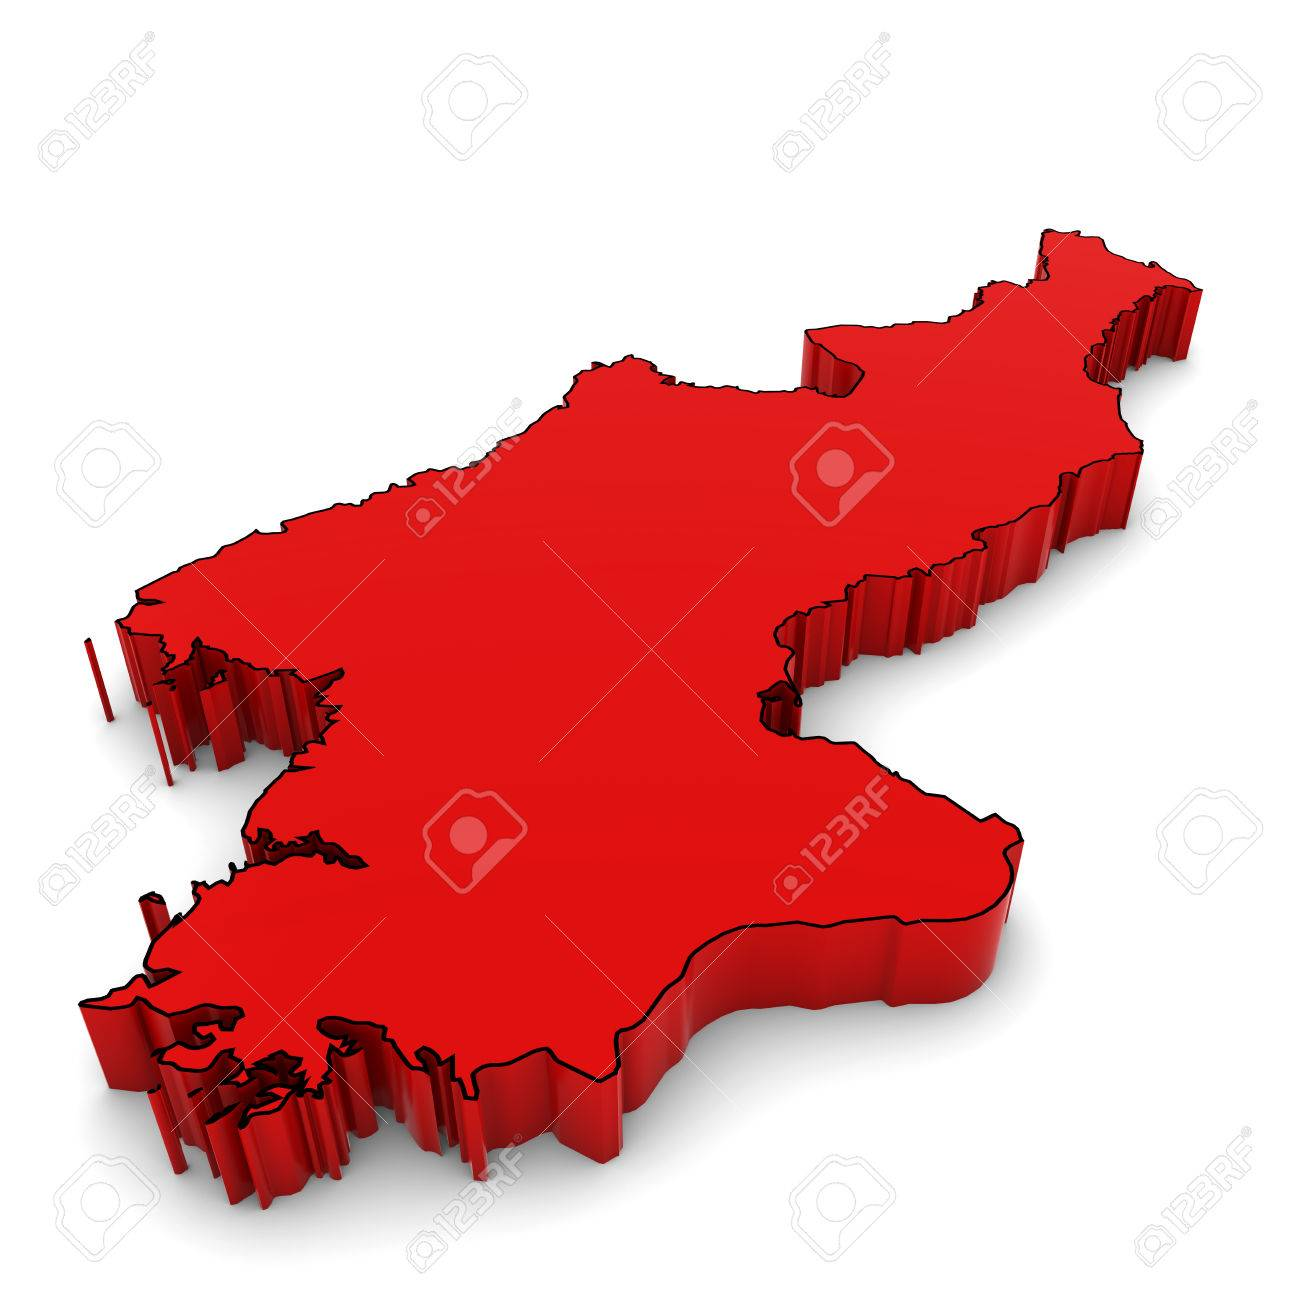 North Korea Map Outline In Red 3d Illustration Stock Photo Picture